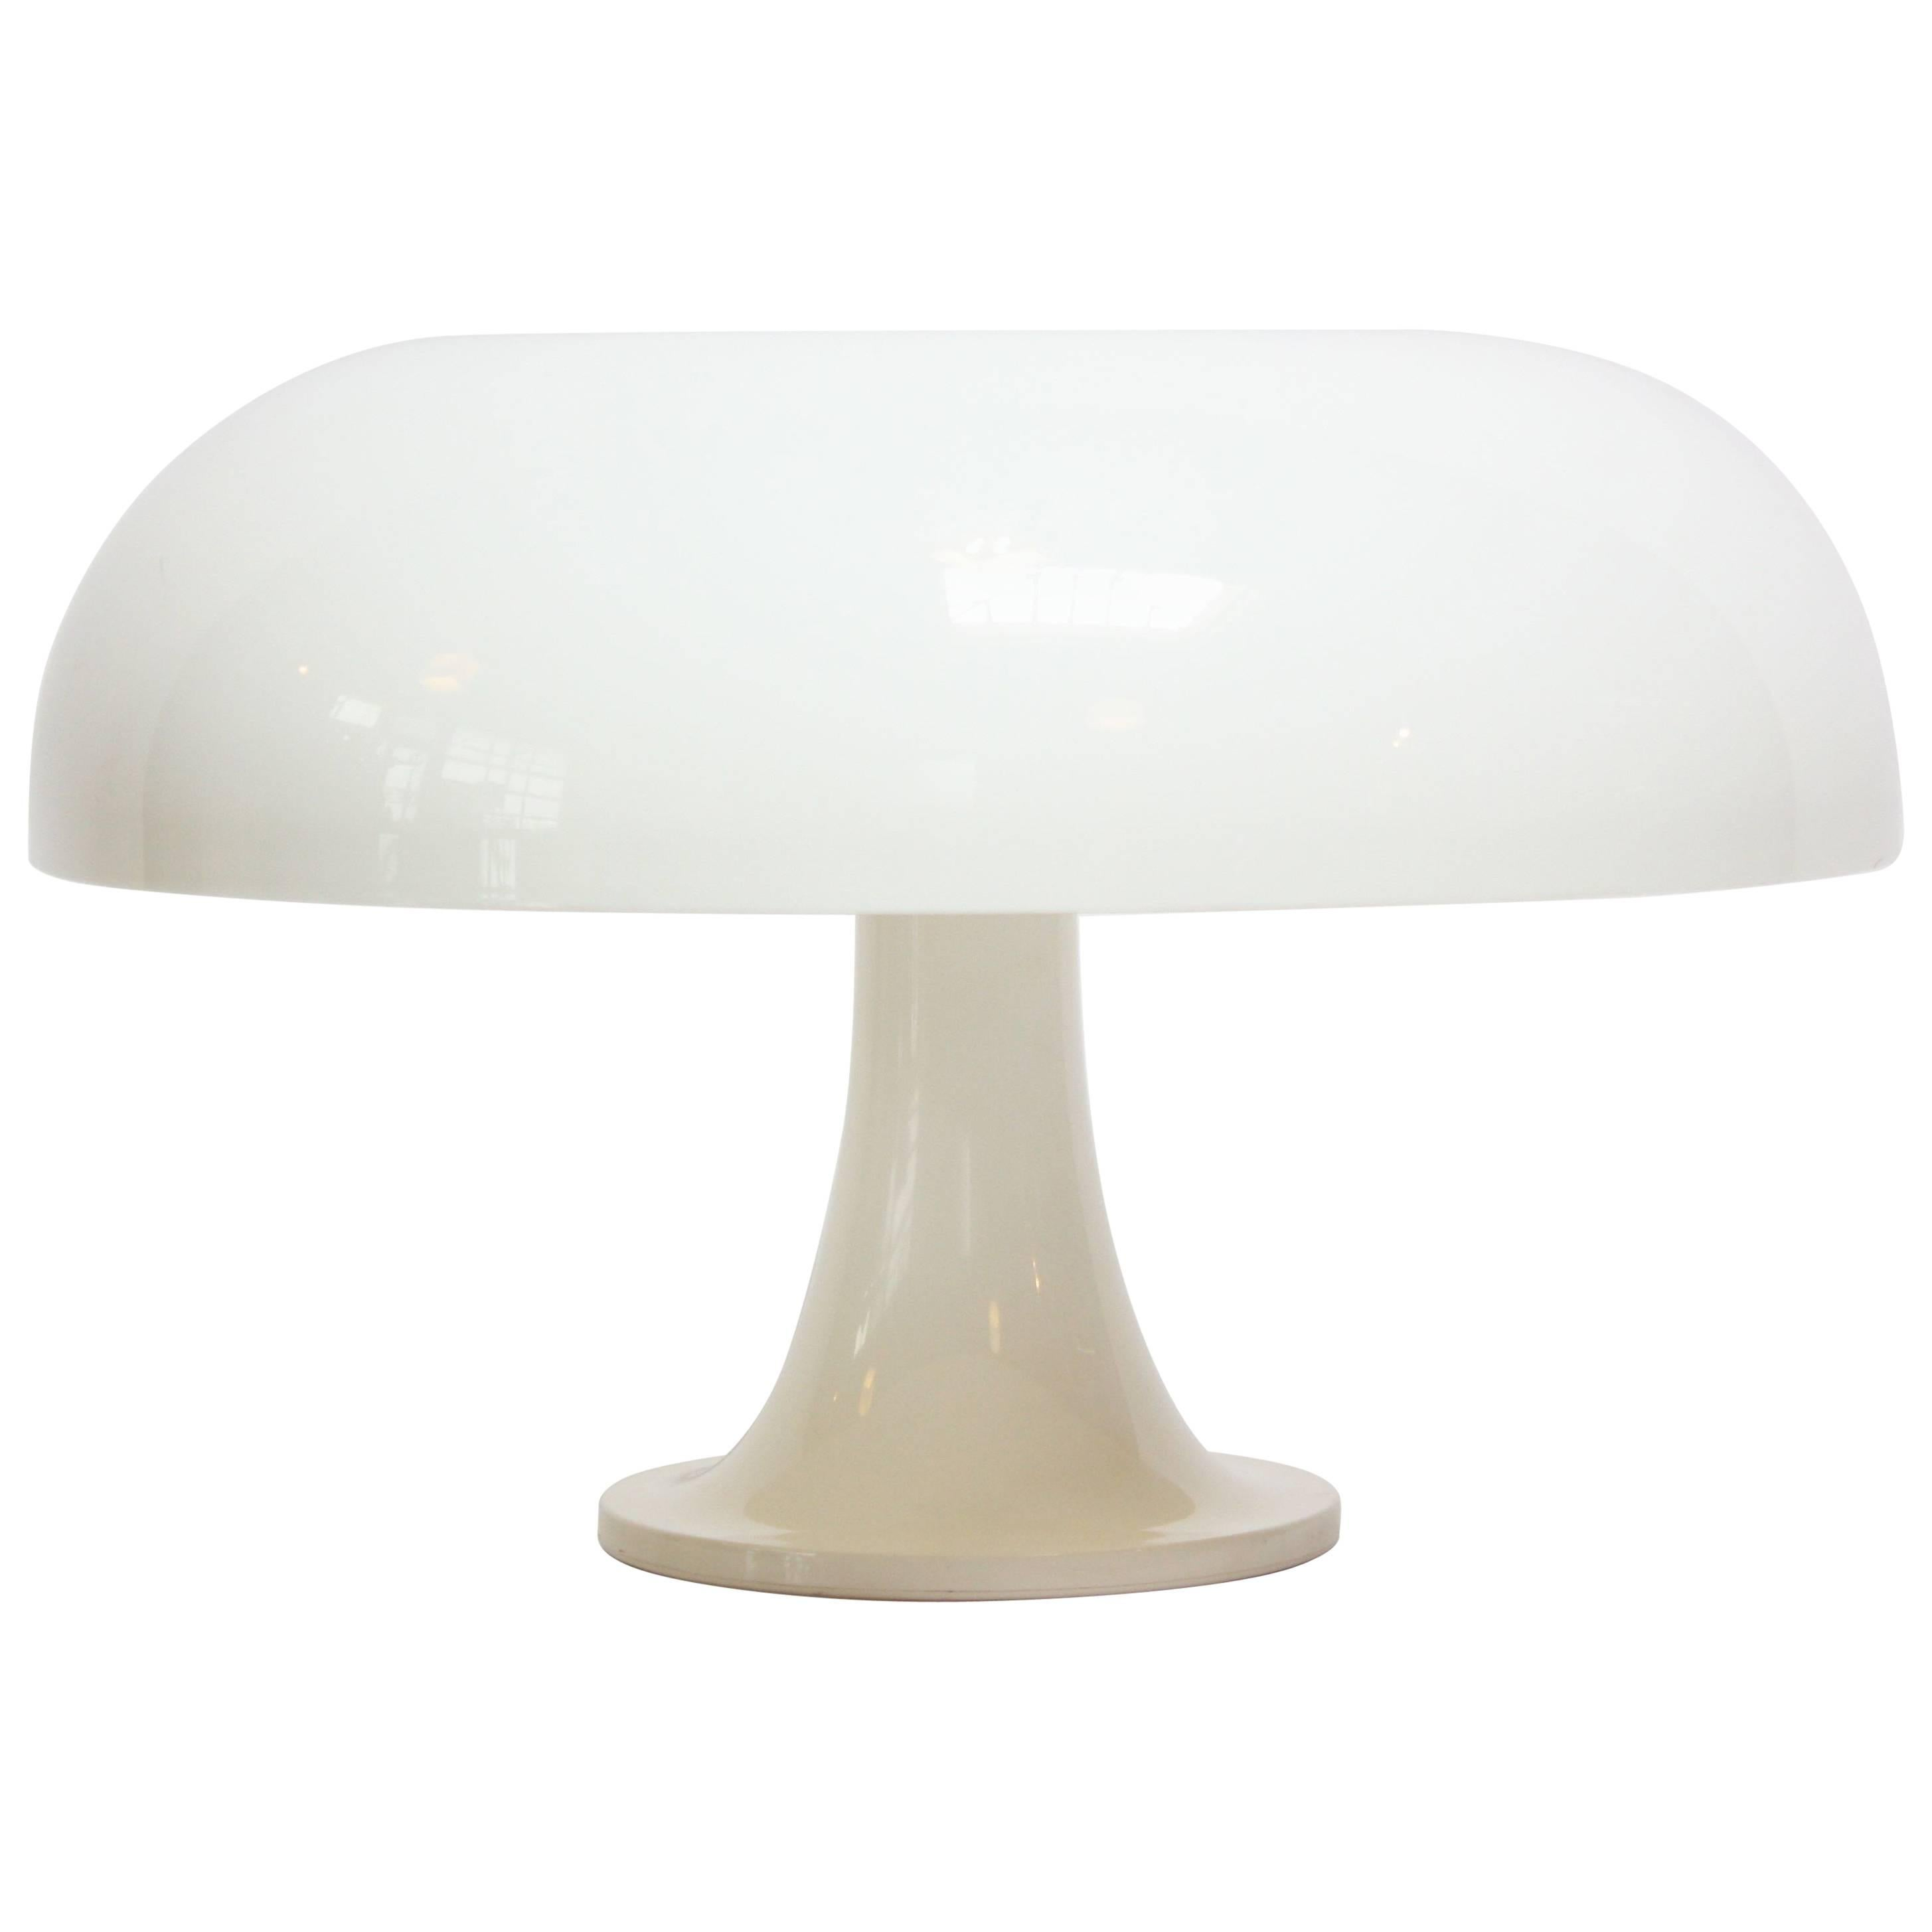 Early 'Nesso' Table Lamp Designed by Giancarlo Mattioli for Artemide